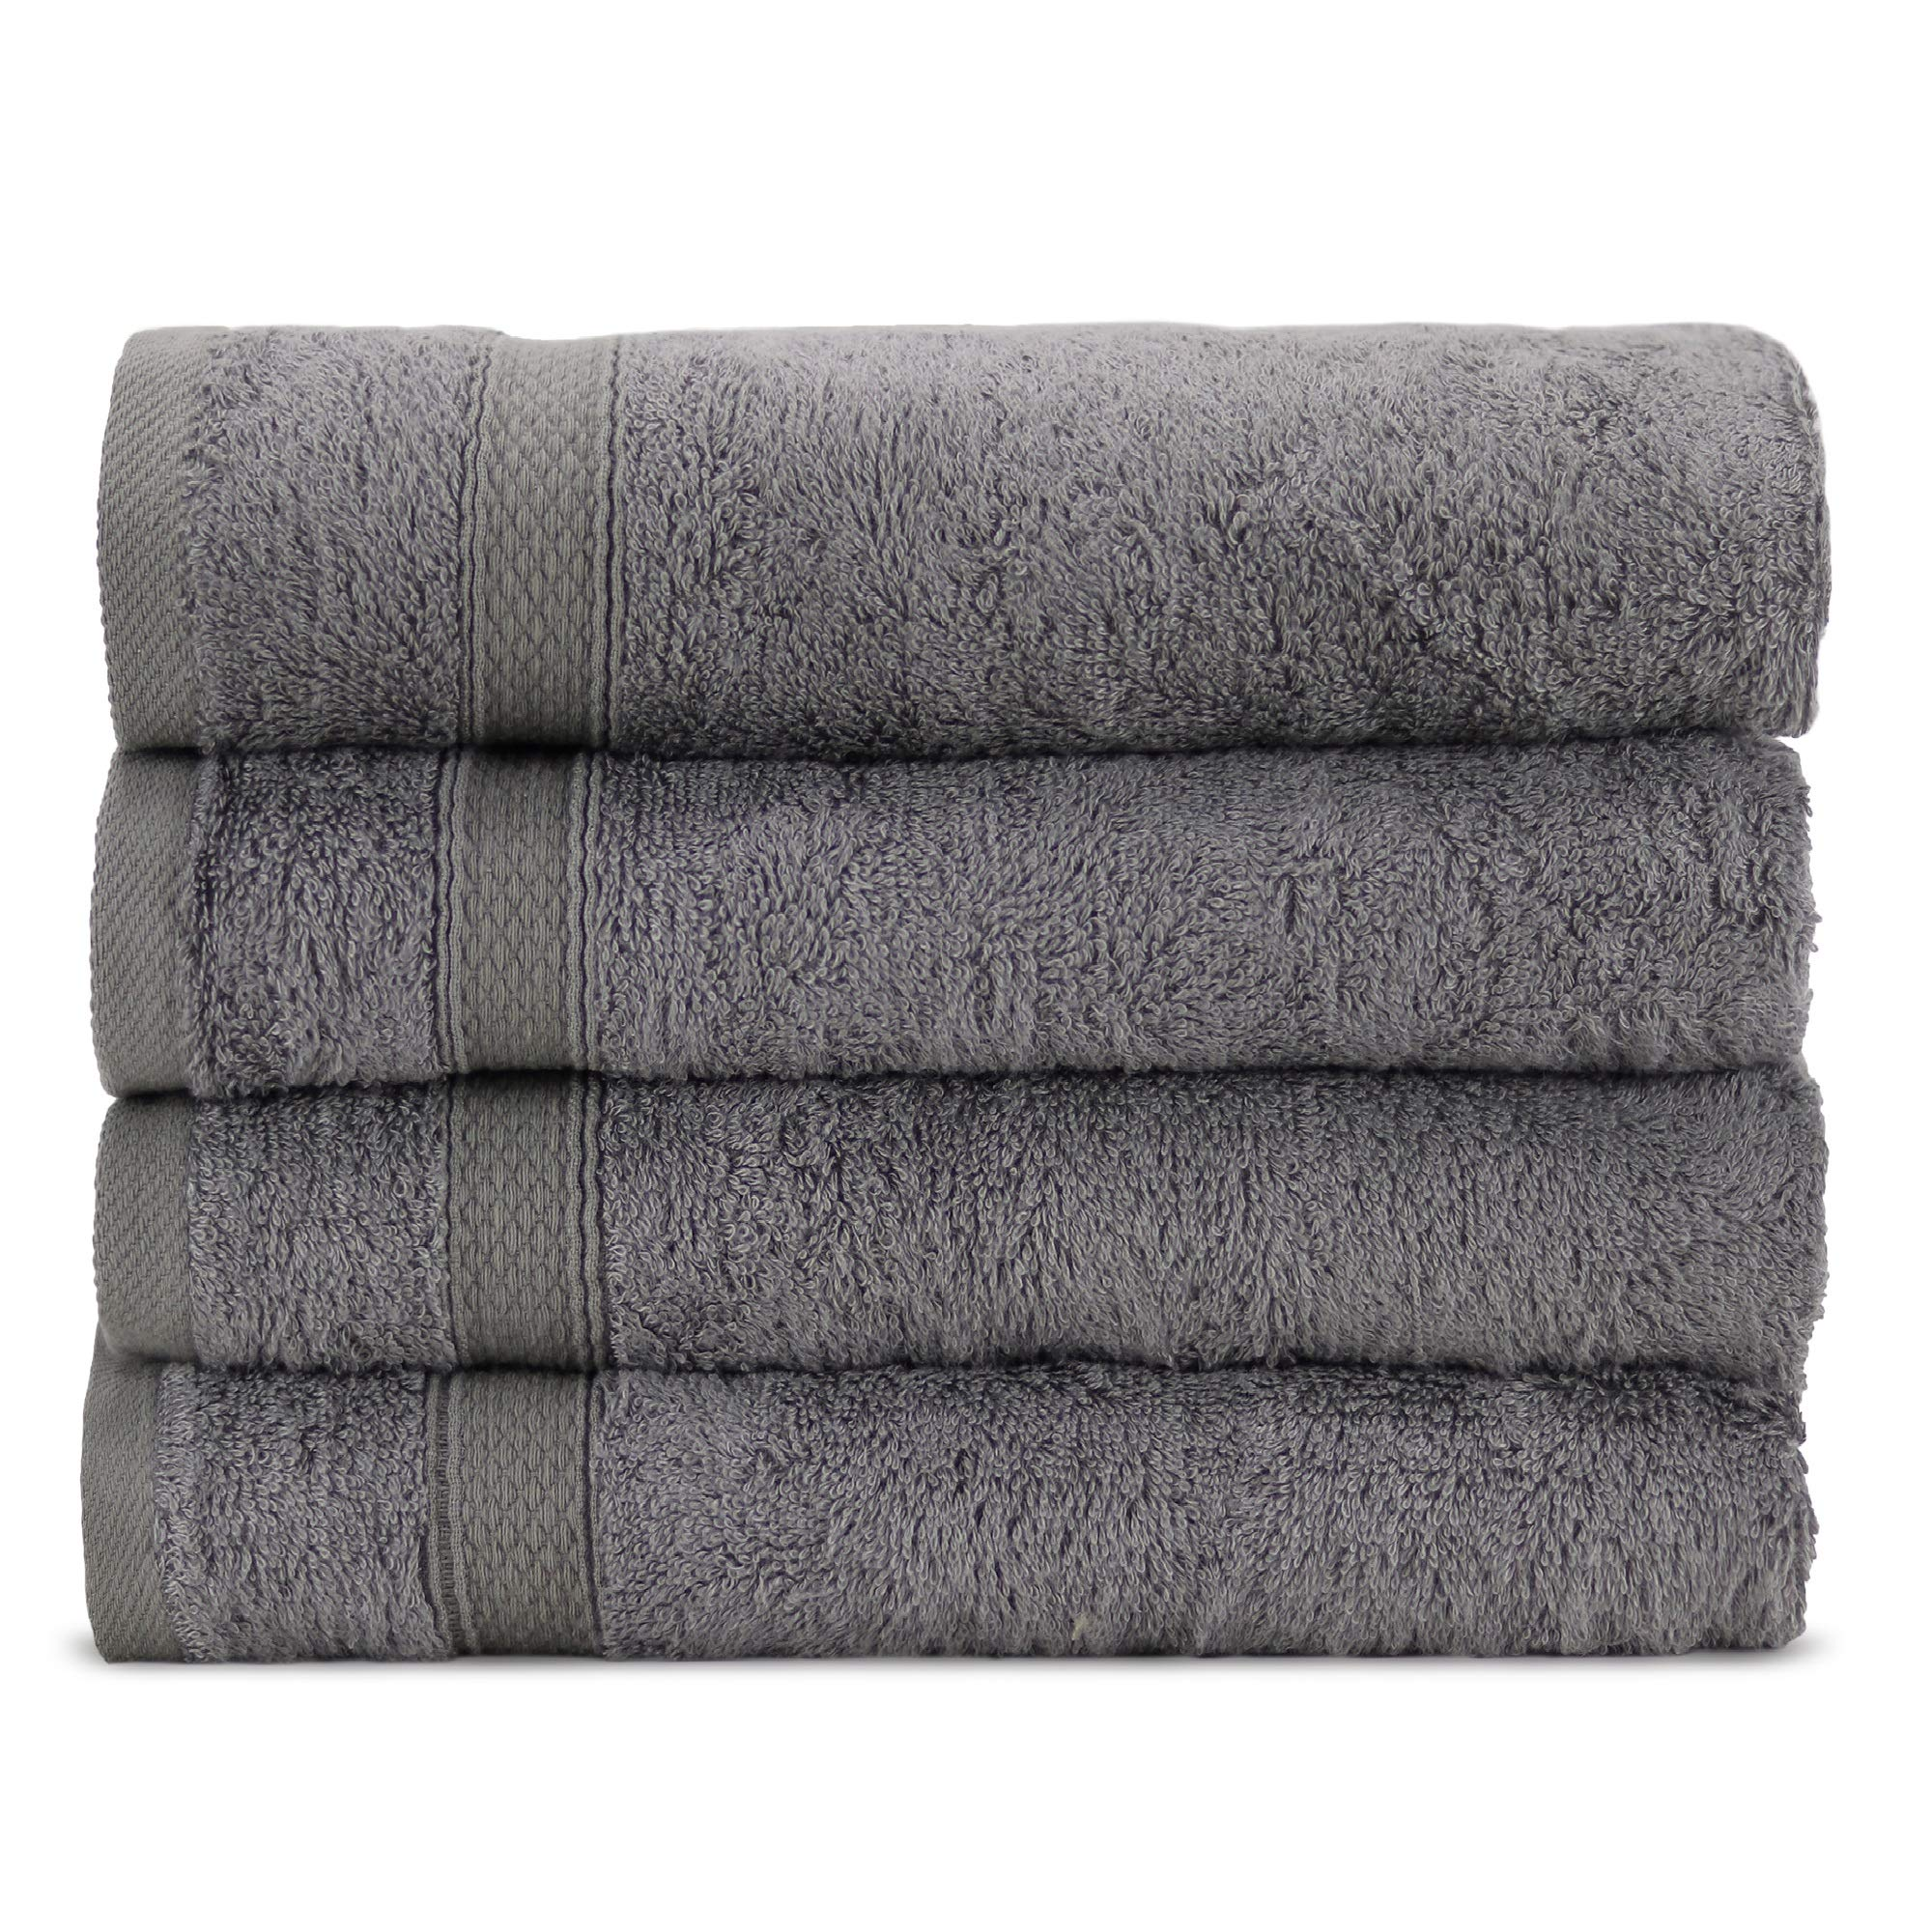 Towel Bazaar Premium Eco-Friendly 65% Turkish Cotton 35% Natural Organic Bamboo Rayon Hand Towel Set of 4, Multipurpose Bathroom Towels for Hand, Face, Gym and Spa (16 x 30 inches, Gray)